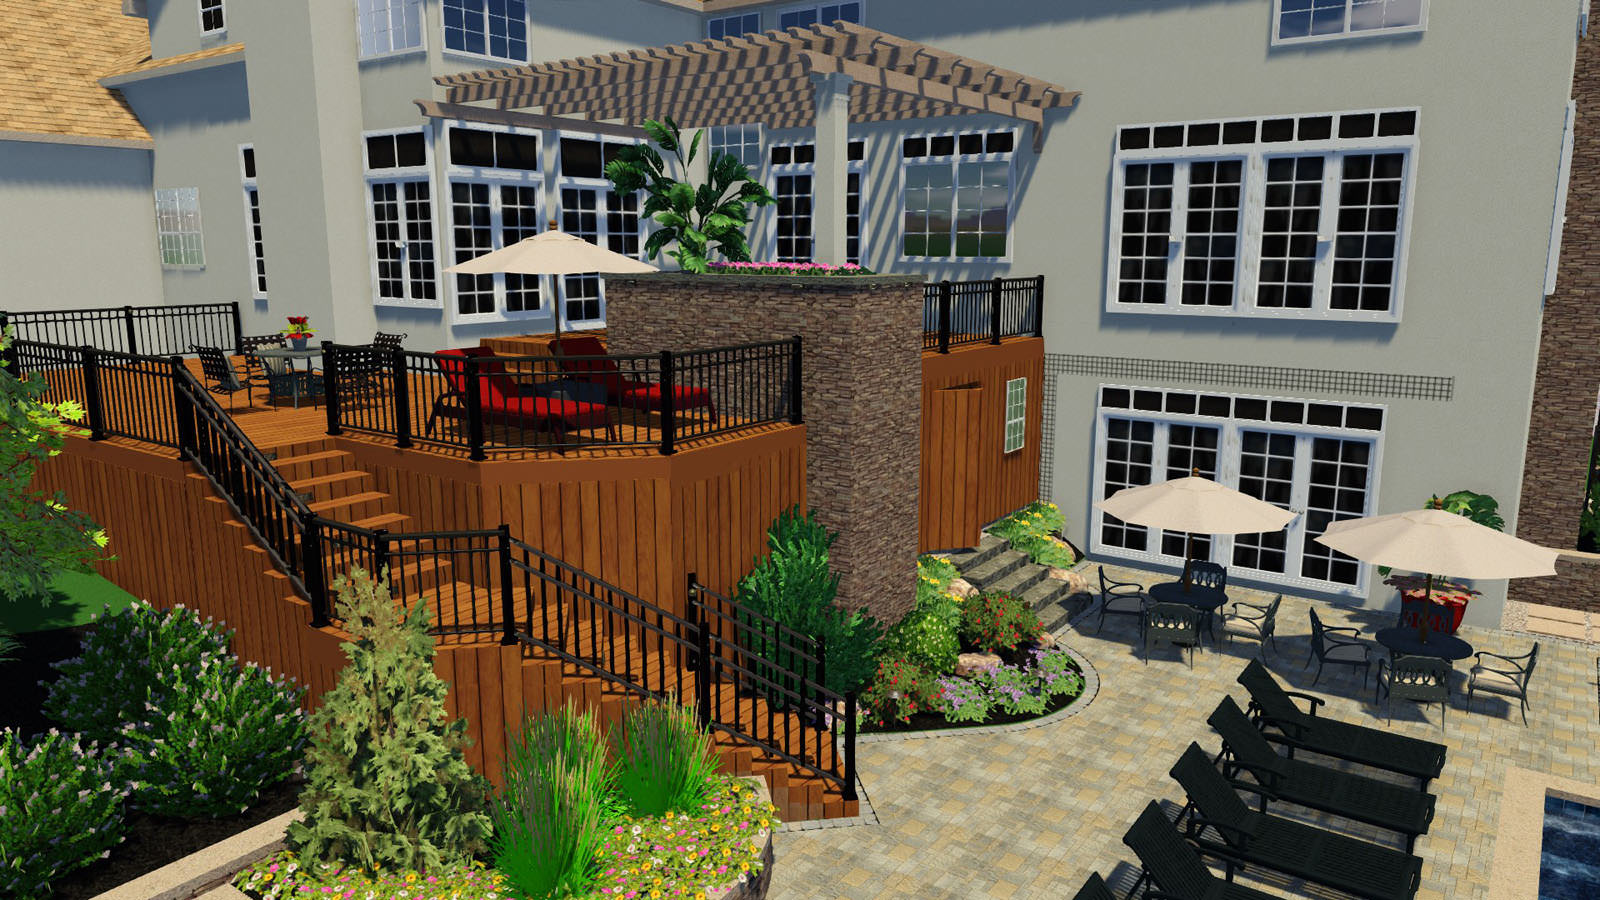 The homeowners were floored when we showed them the first glimpse into their new landscape design!